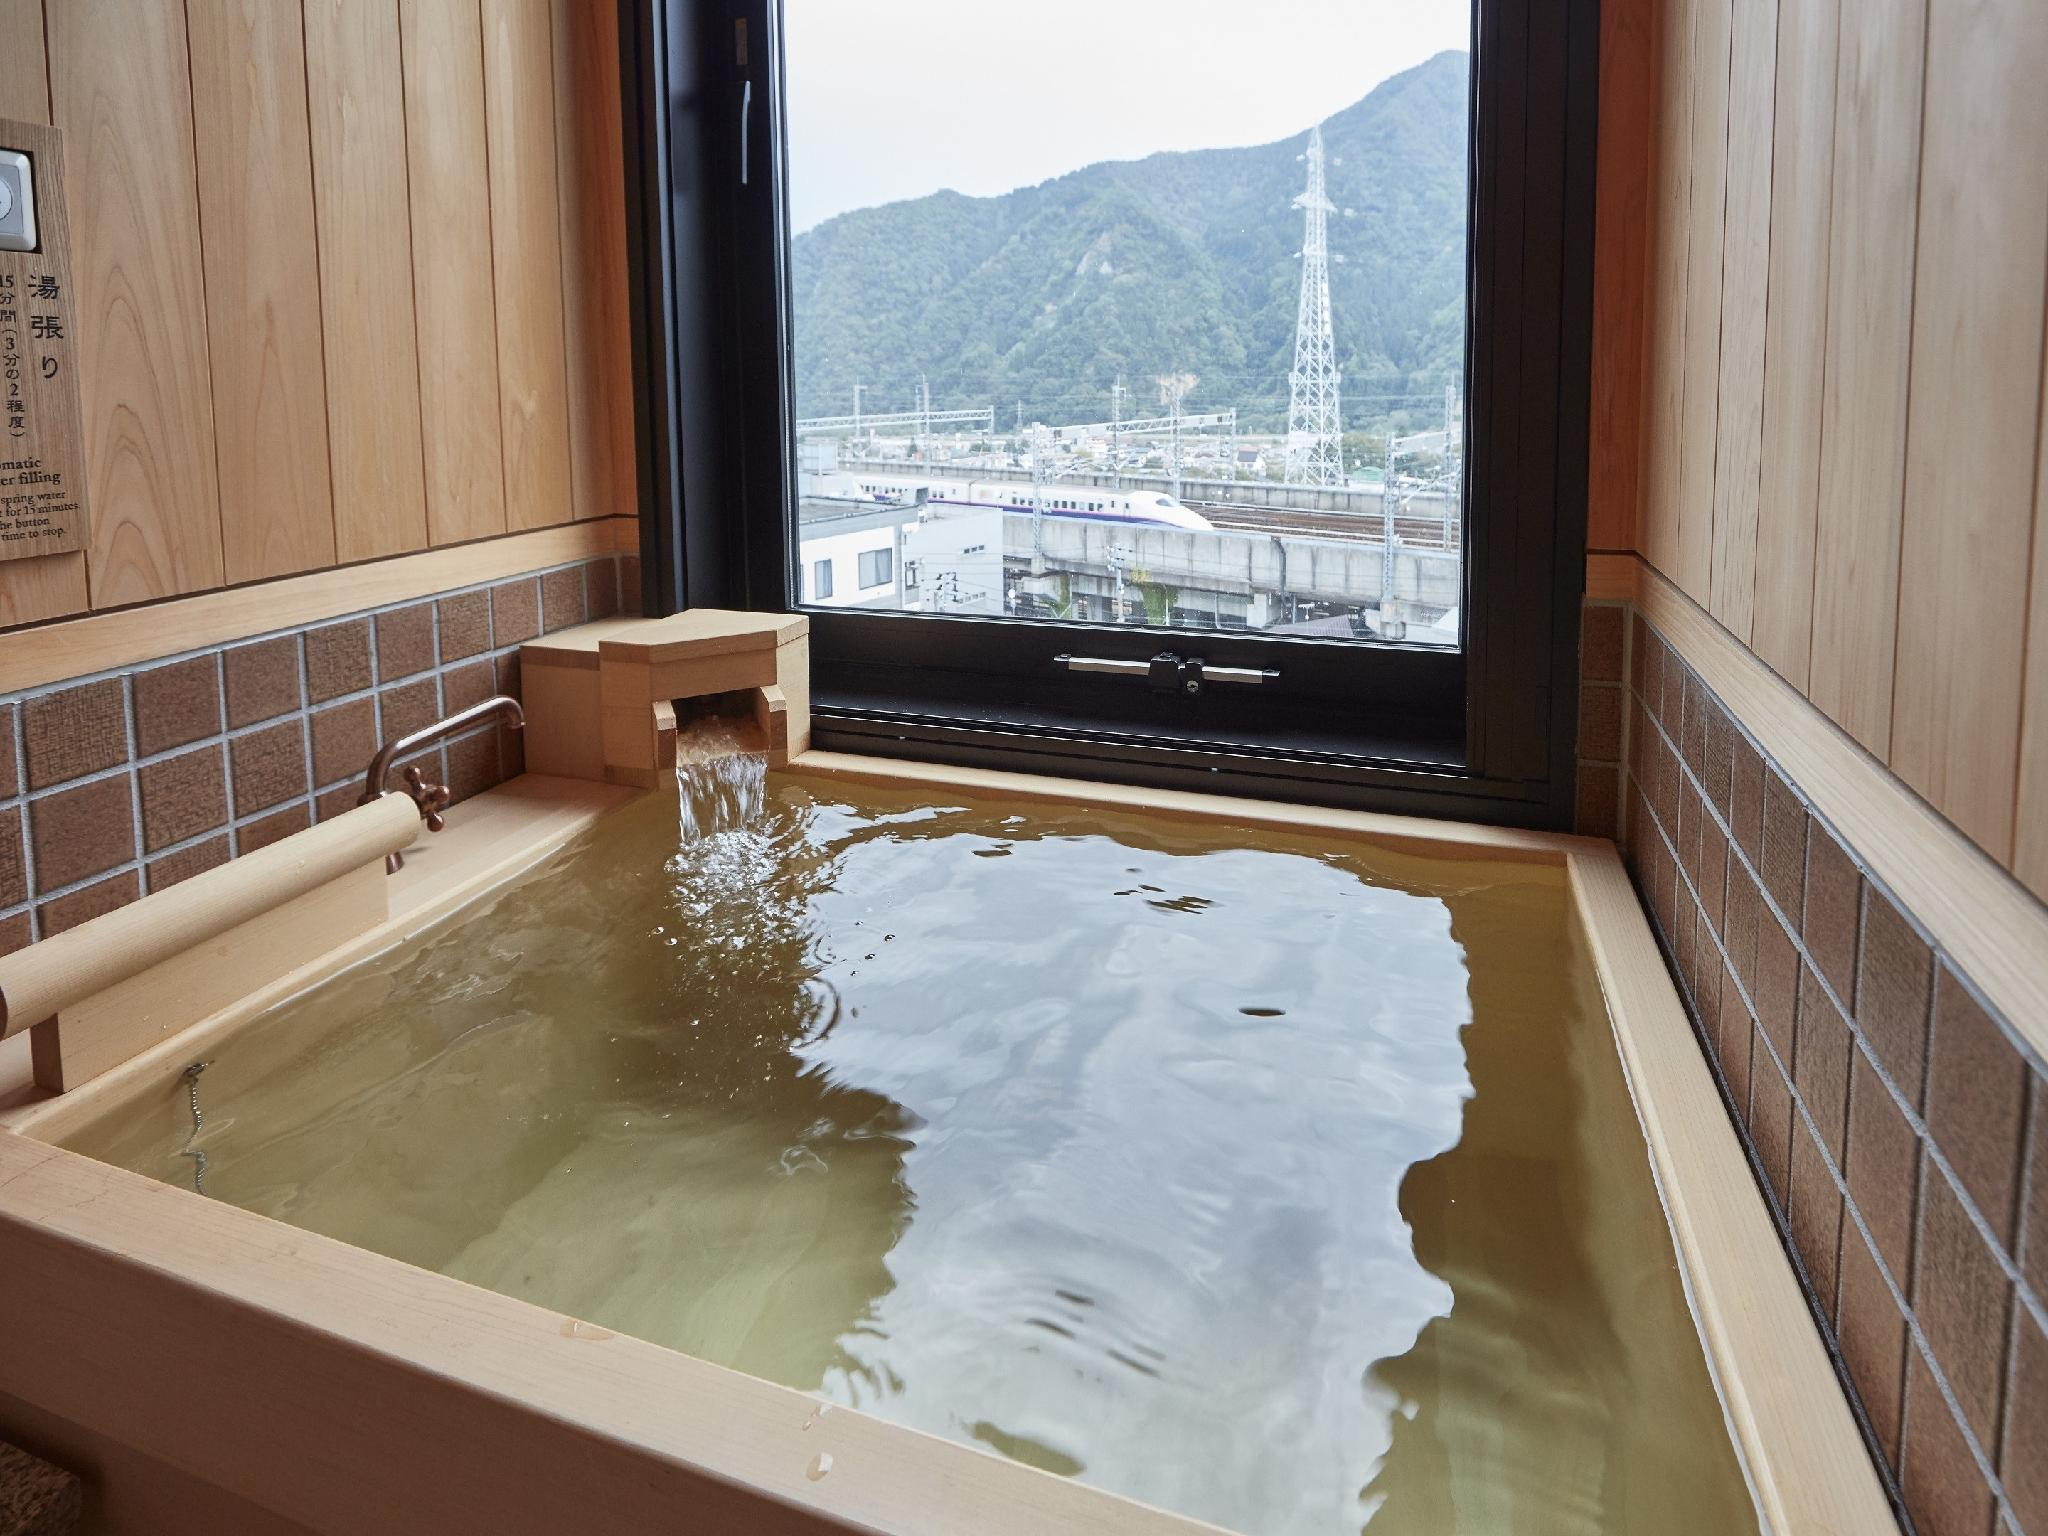 일본식 트리플룸(천연온천탕) (Japanese-style Triple Room with Natural Hot Spring Bath)